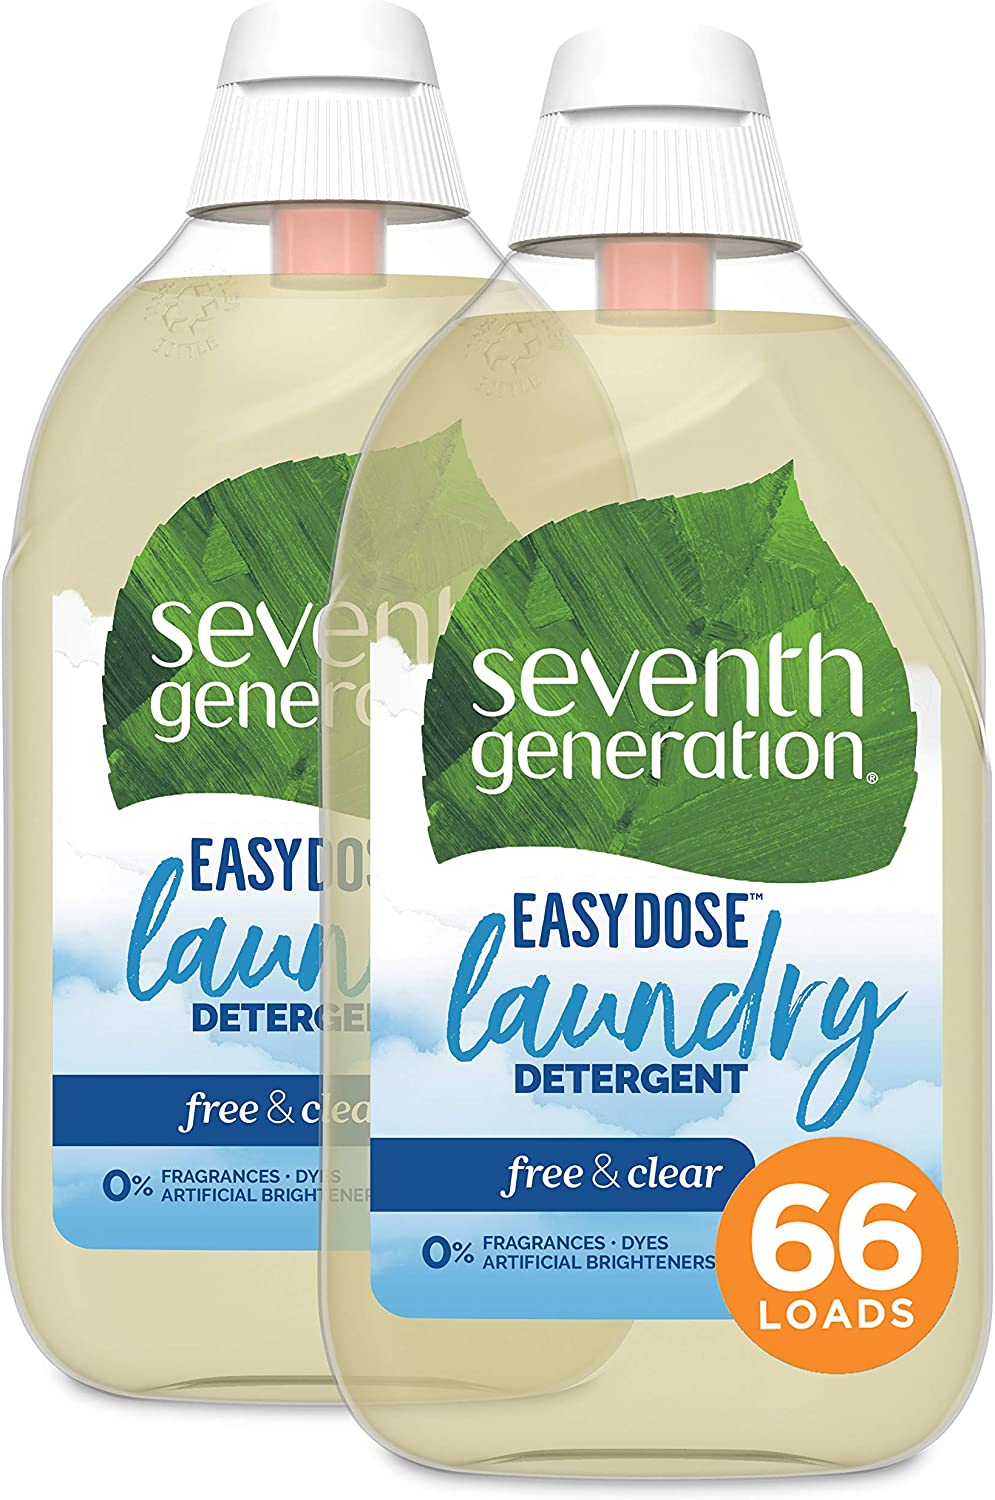 Seventh Generation Laundry Detergent, Ultra Concentrated EasyDose, Free & Clear, 23 oz, 2 Pack, 132 Loads (Packaging May Vary)